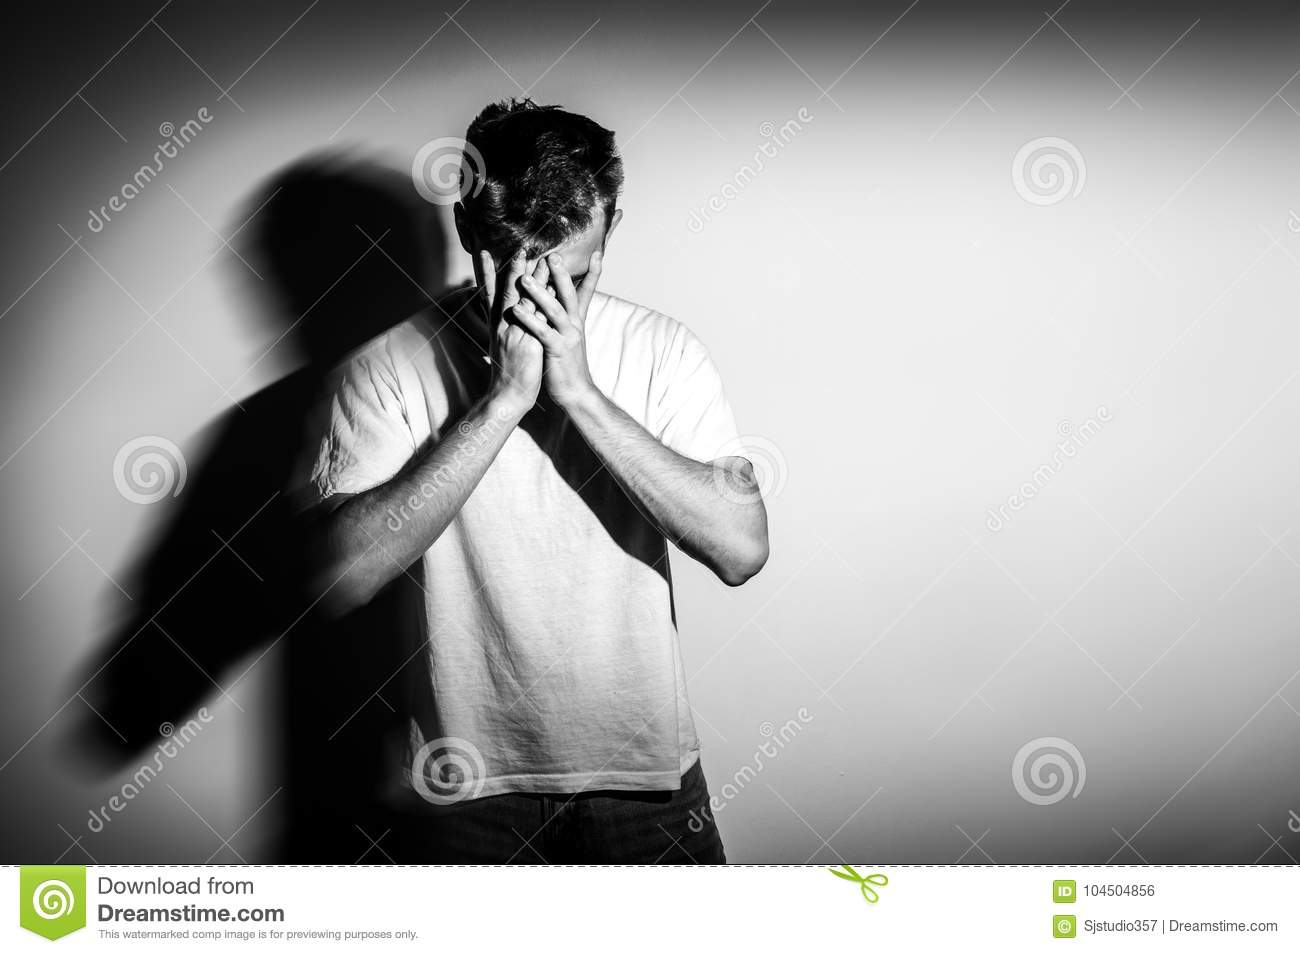 Sad man with hands on face in sadness on white background black and white photo free